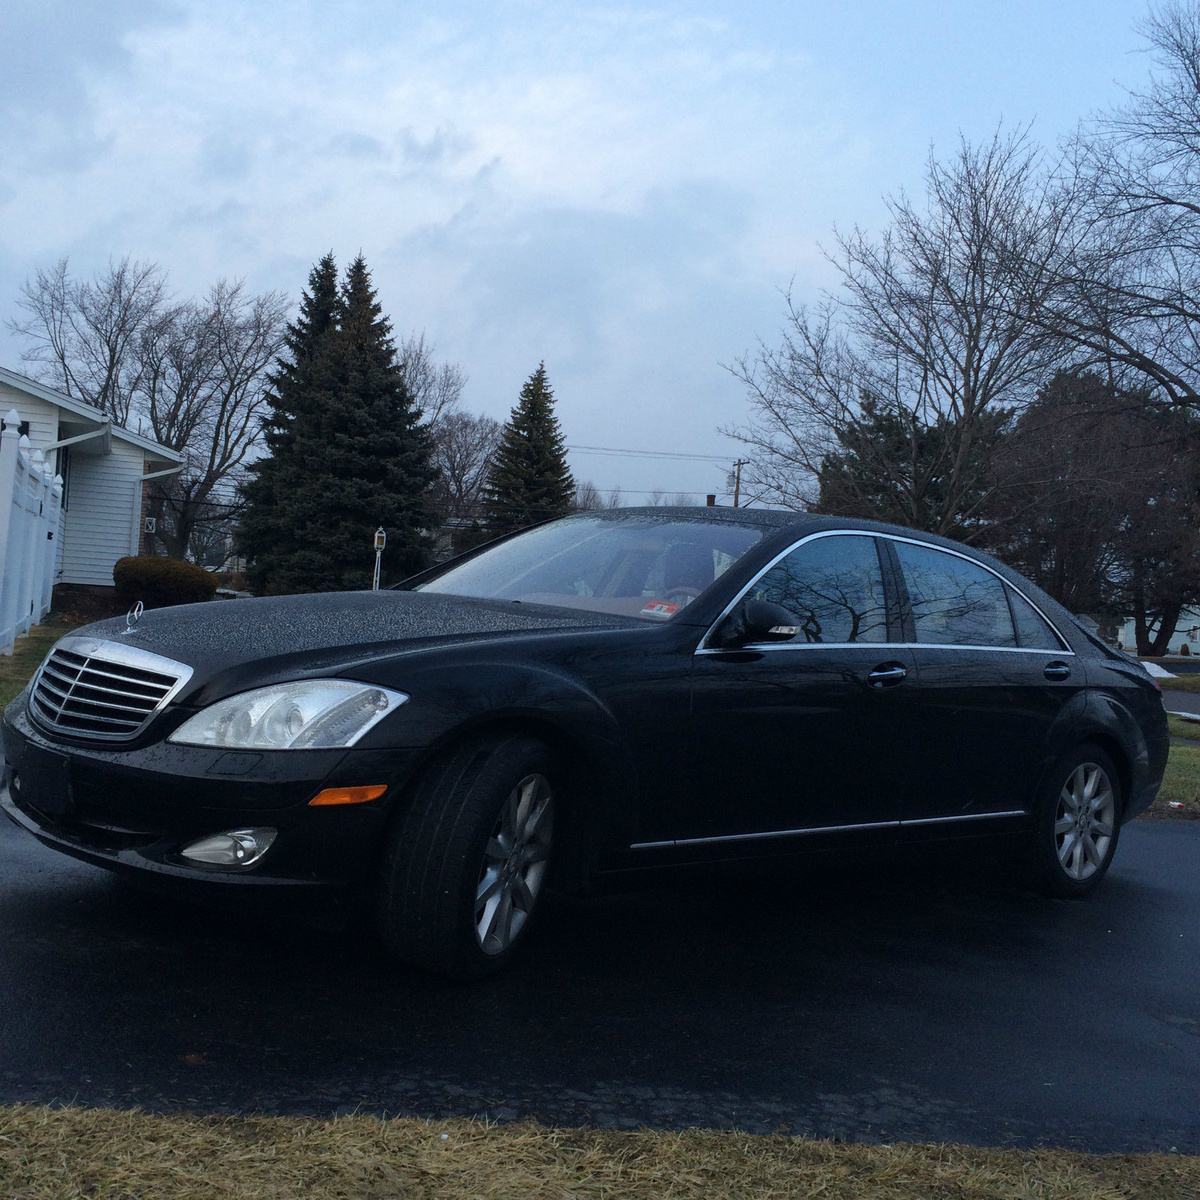 2008 mercedes benz s class pictures cargurus for Mercedes benz s550 4matic 2010